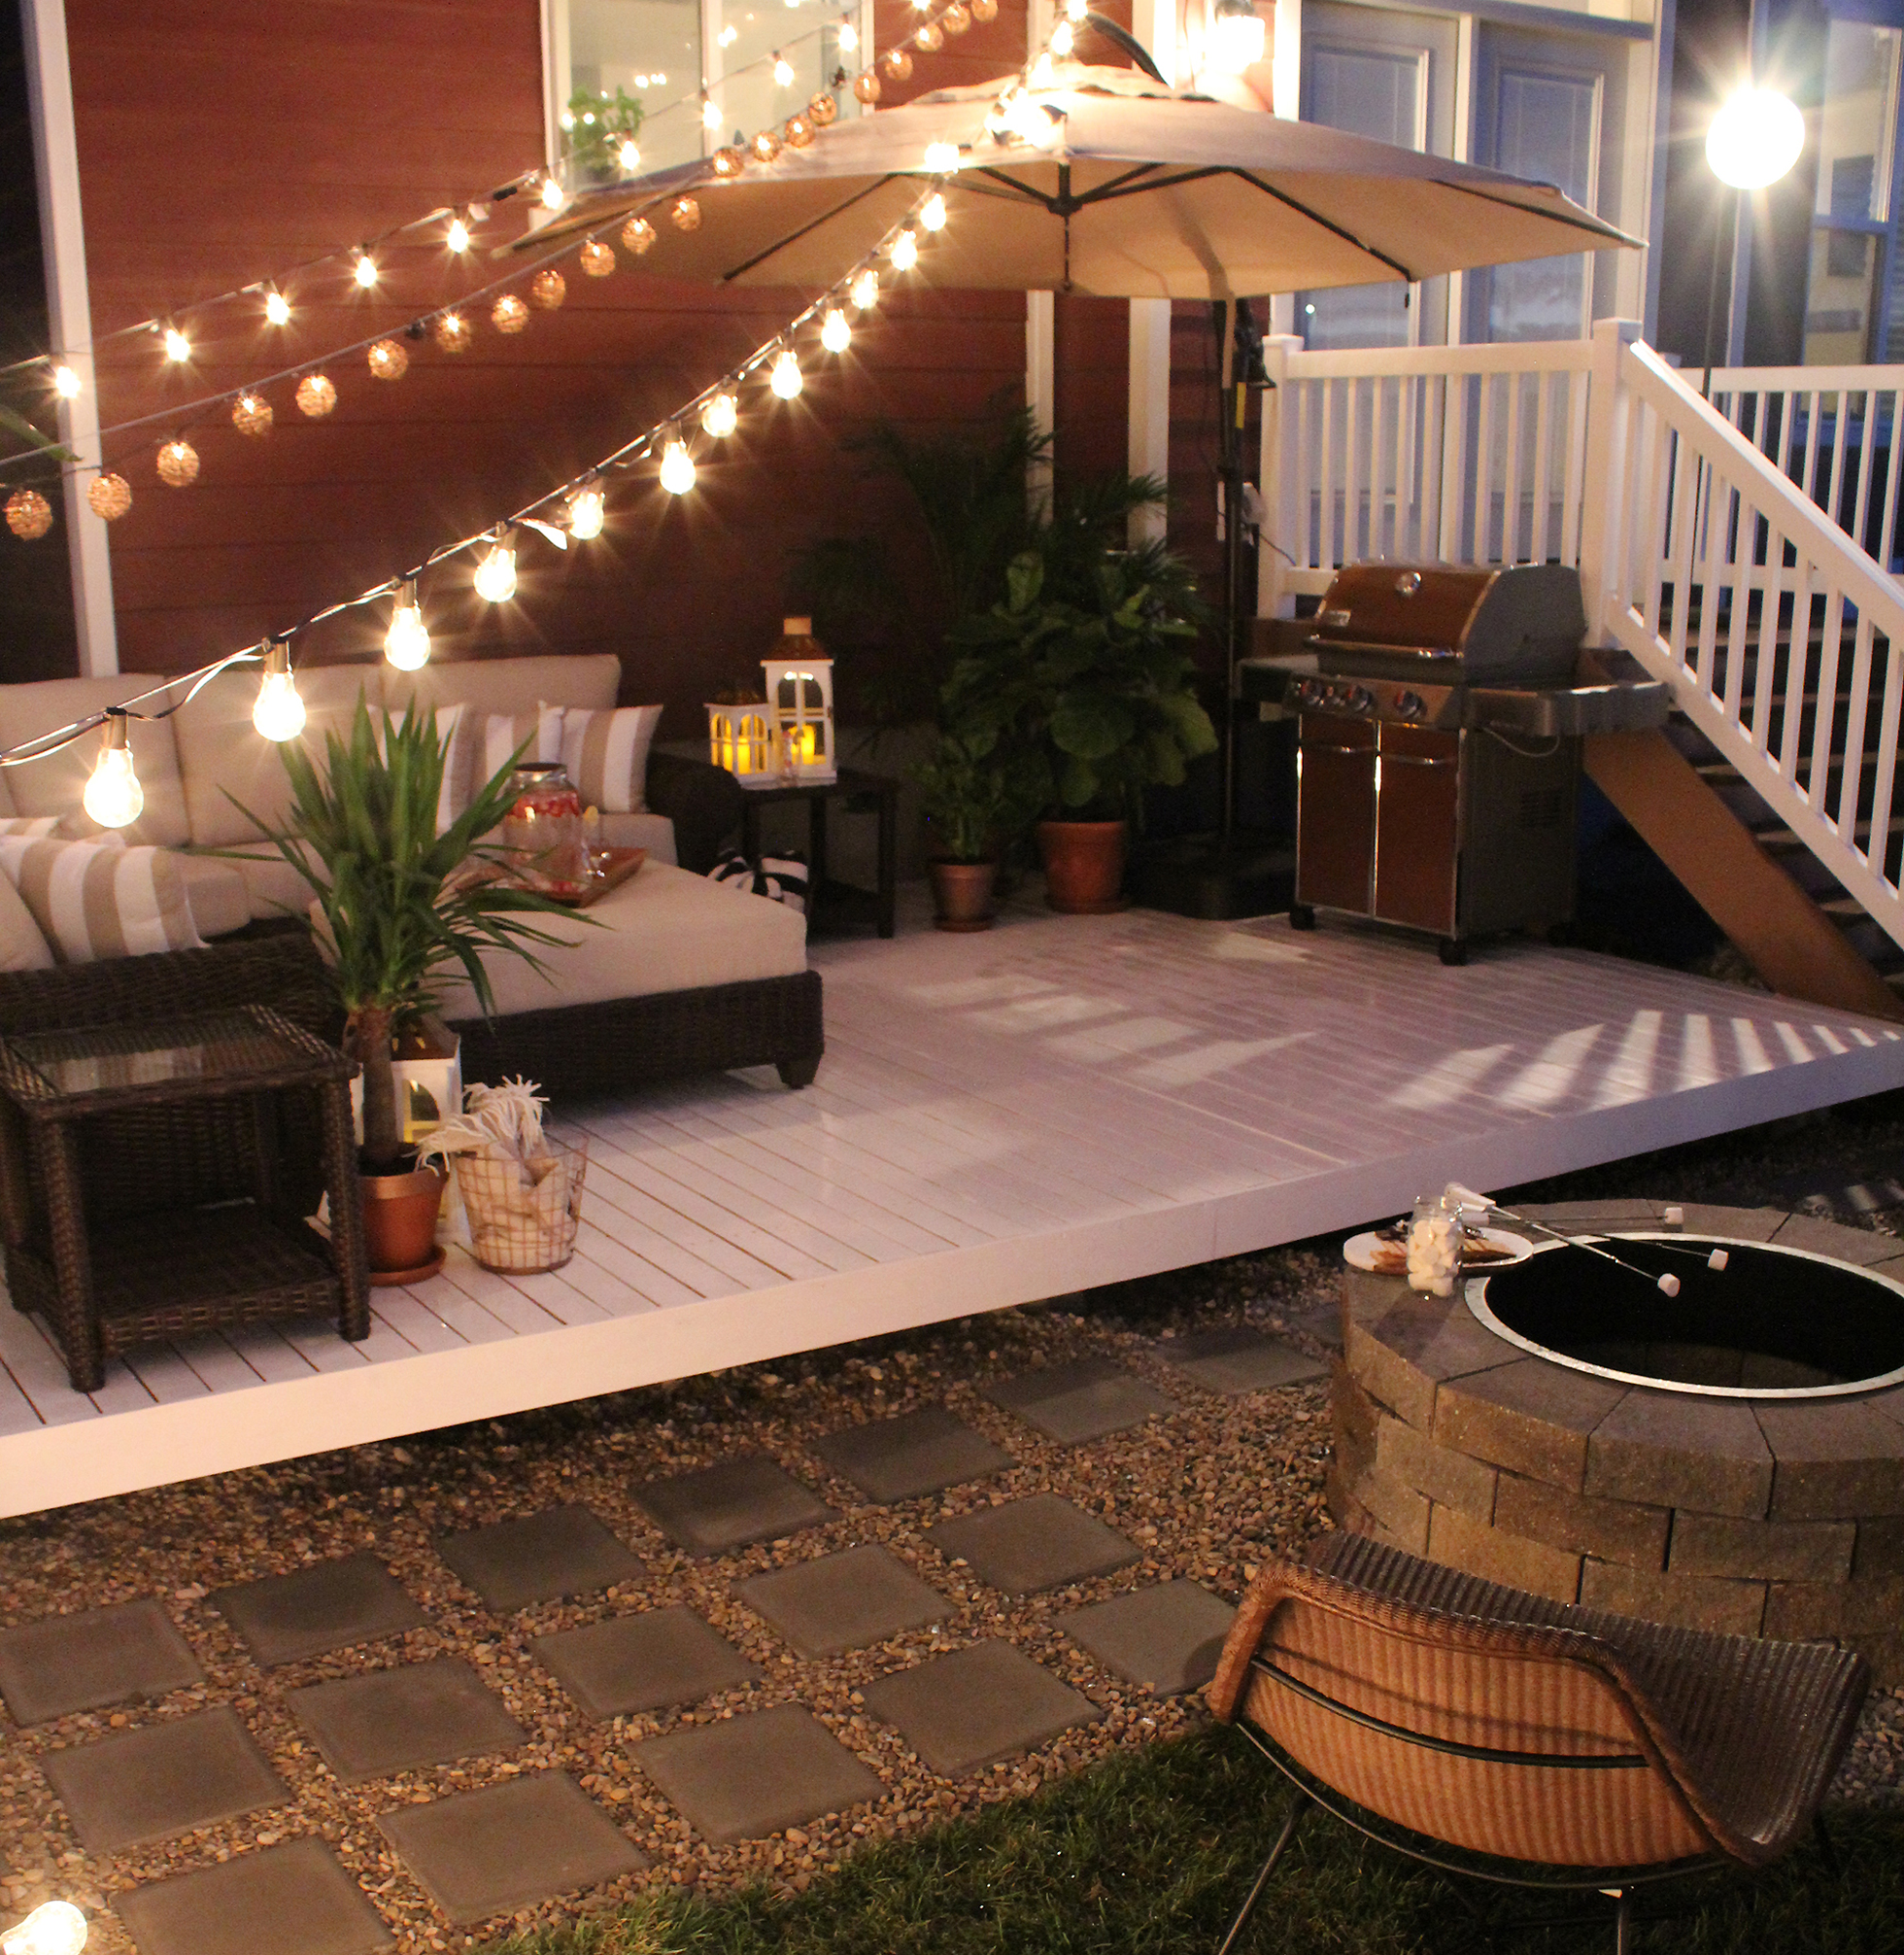 8 Simple And Easy Landscaping Ideas | HouseLogic on Basic Patio Ideas id=73285